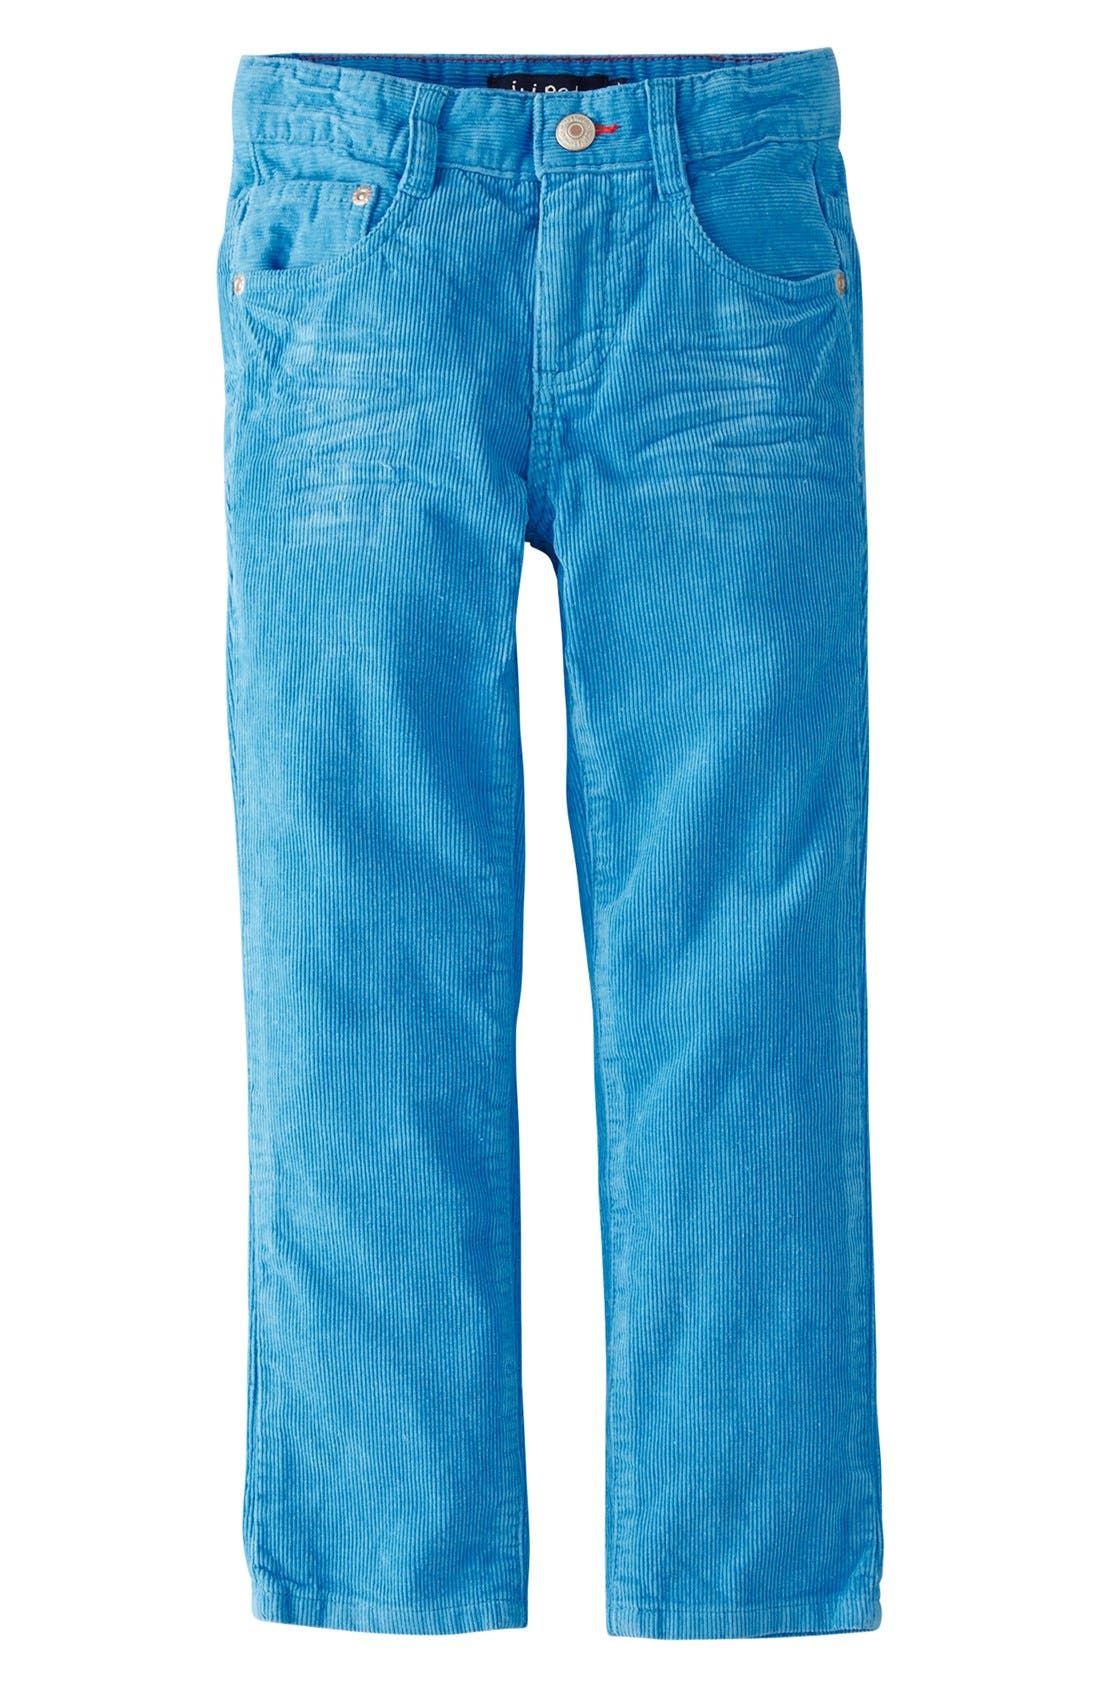 Alternate Image 1 Selected - Mini Boden Slim Fit Corduroy Pants (Toddler Boys, Little Boys & Big Boys)